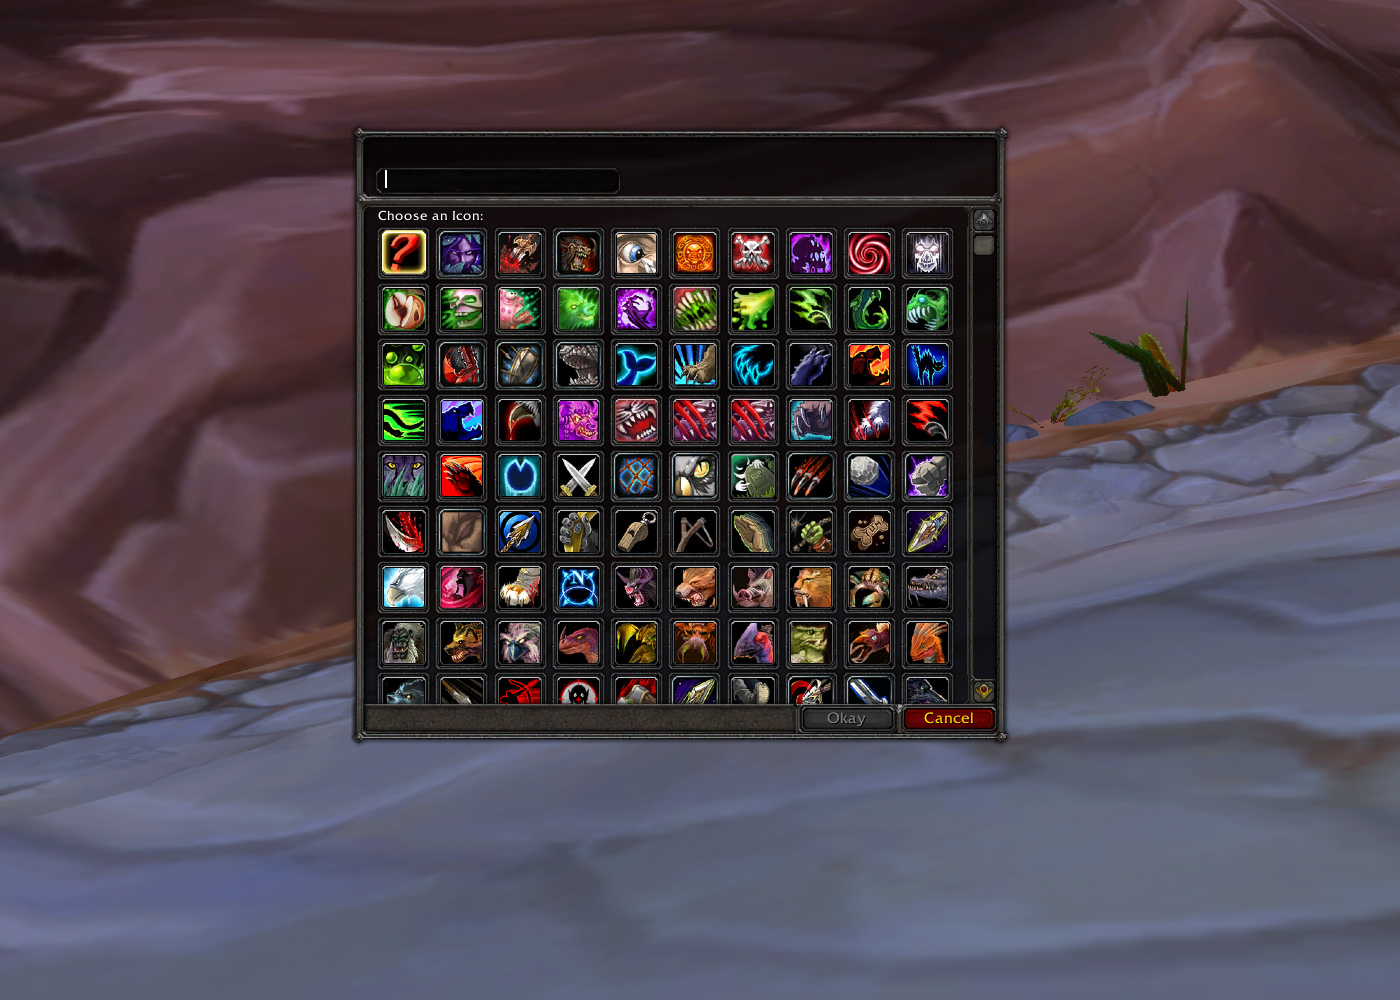 WoW Classic Best Addons and Macros Guide - WoW Classic - Icy